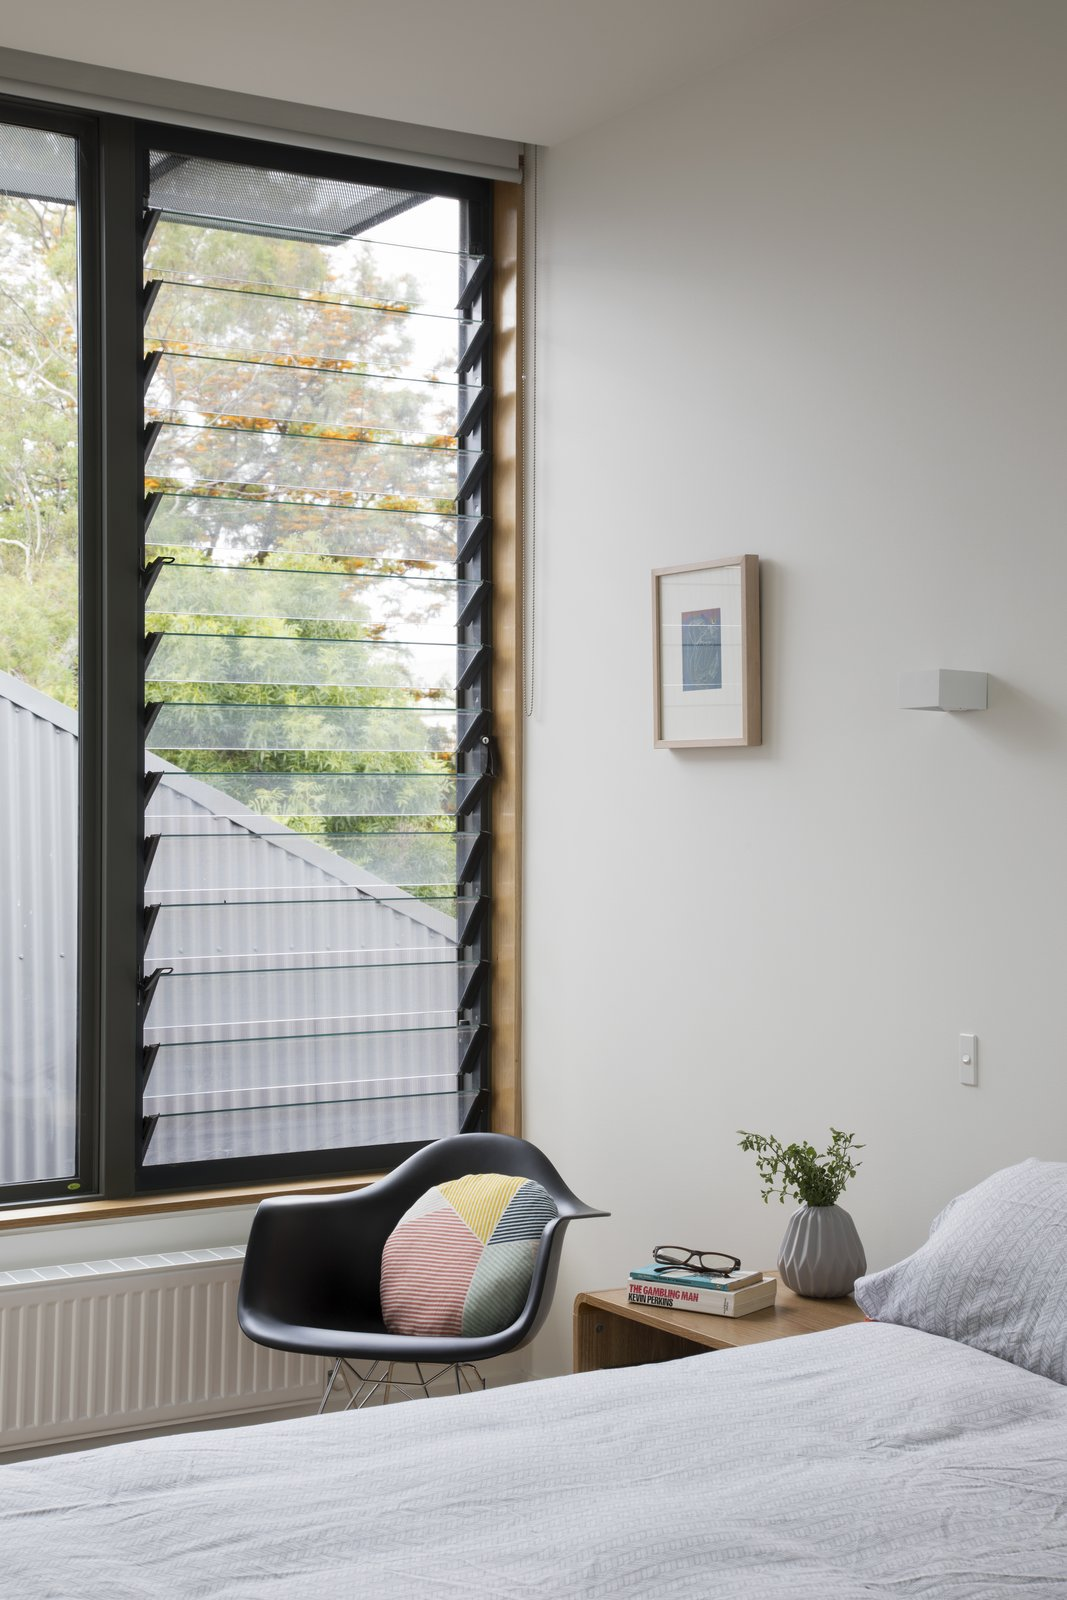 Bedroom, Bed, Night Stands, Wall Lighting, and Chair A Breezway Louve window brings air into a bedroom.  Photo 9 of 10 in A Family Home in Australia Features a Playful Version of the Classic Pitched Roof